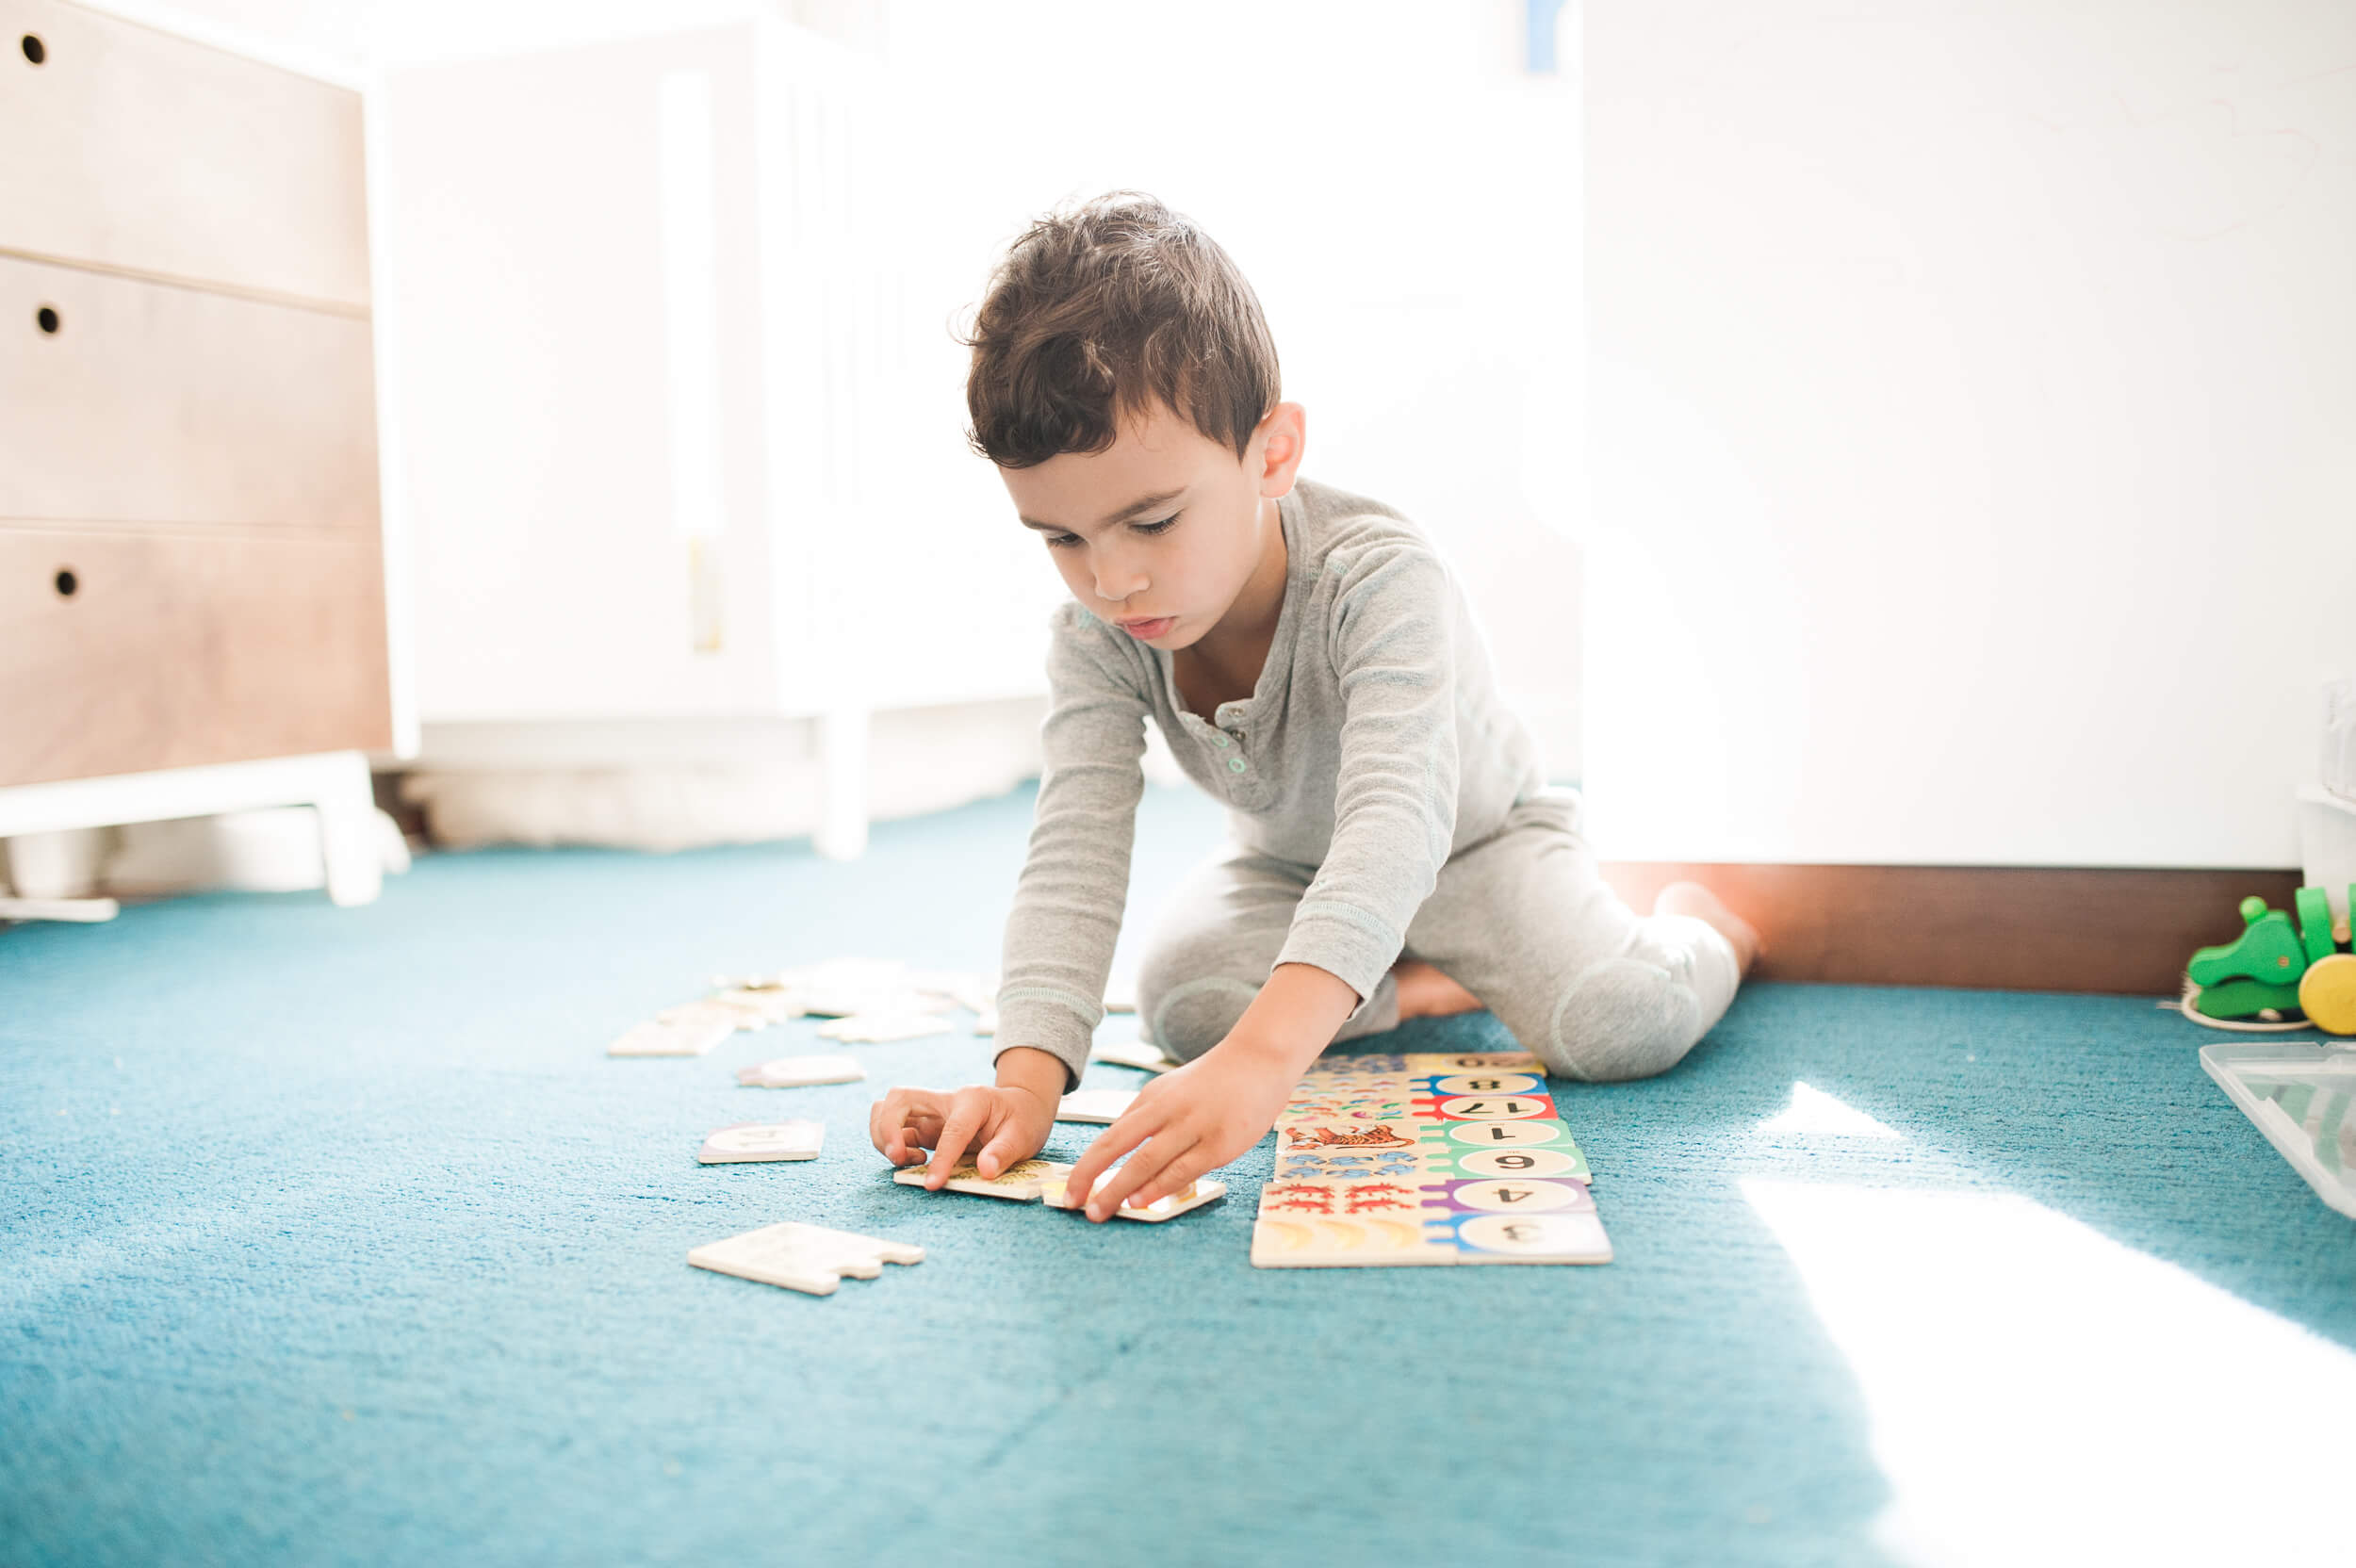 Child building a puzzle at home Brooklyn lifestyle family photographer based in Litchfield County, CT at home in Cobble Hill neighborhood by Lindsey Victoria Photography